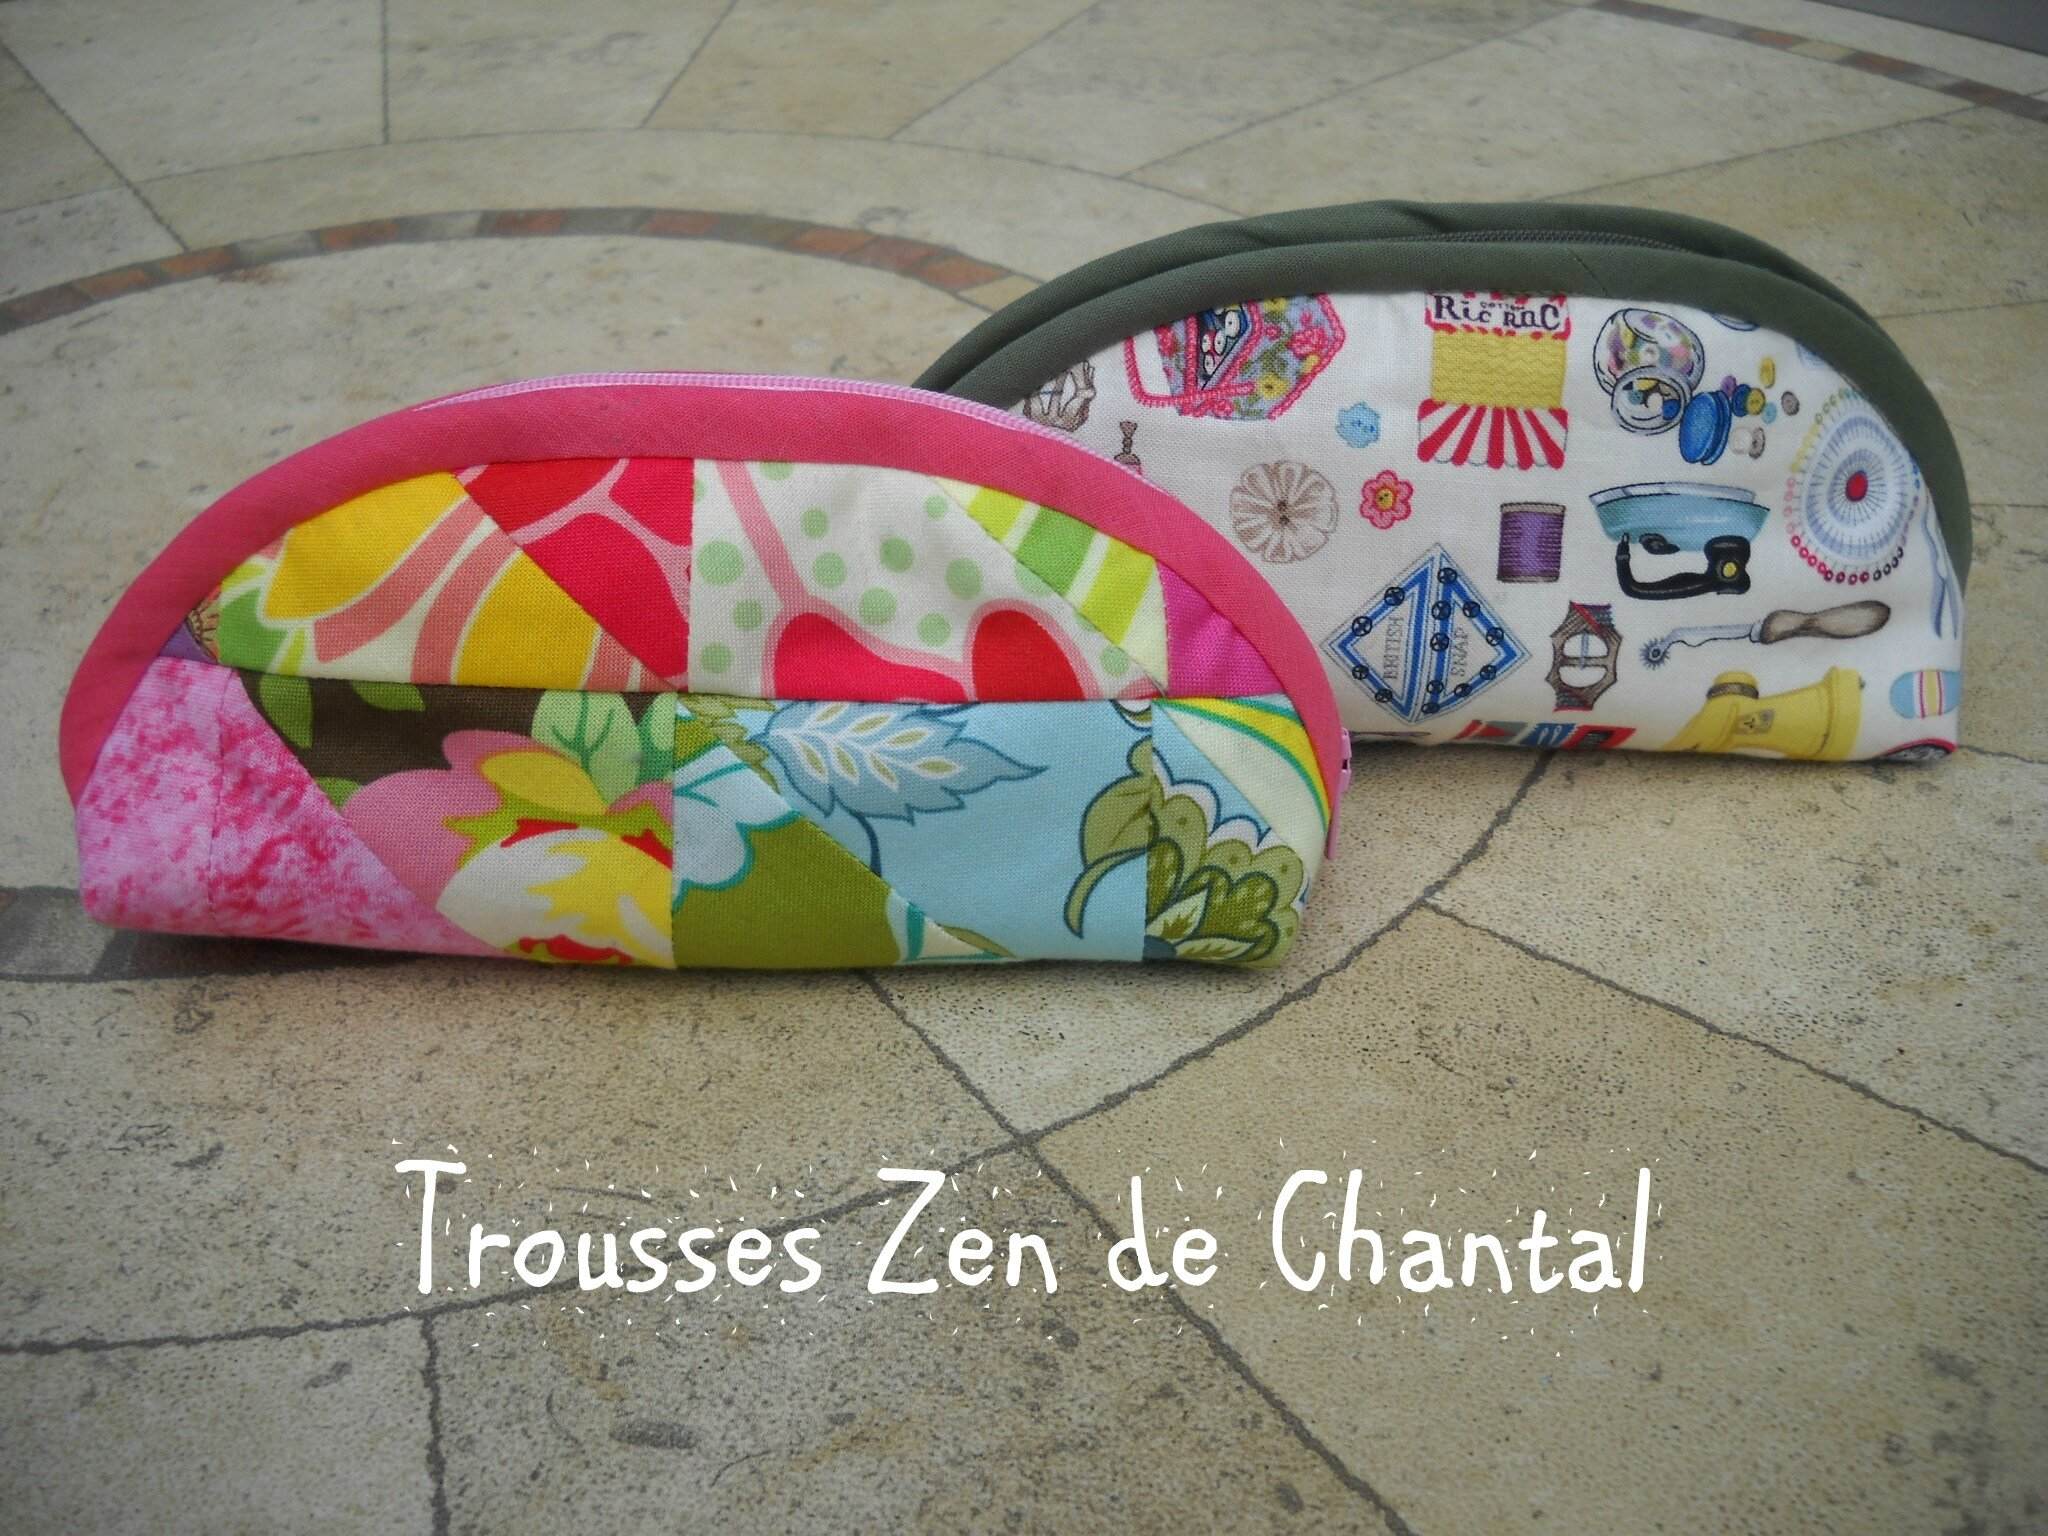 trousse Zen 88 Chantal